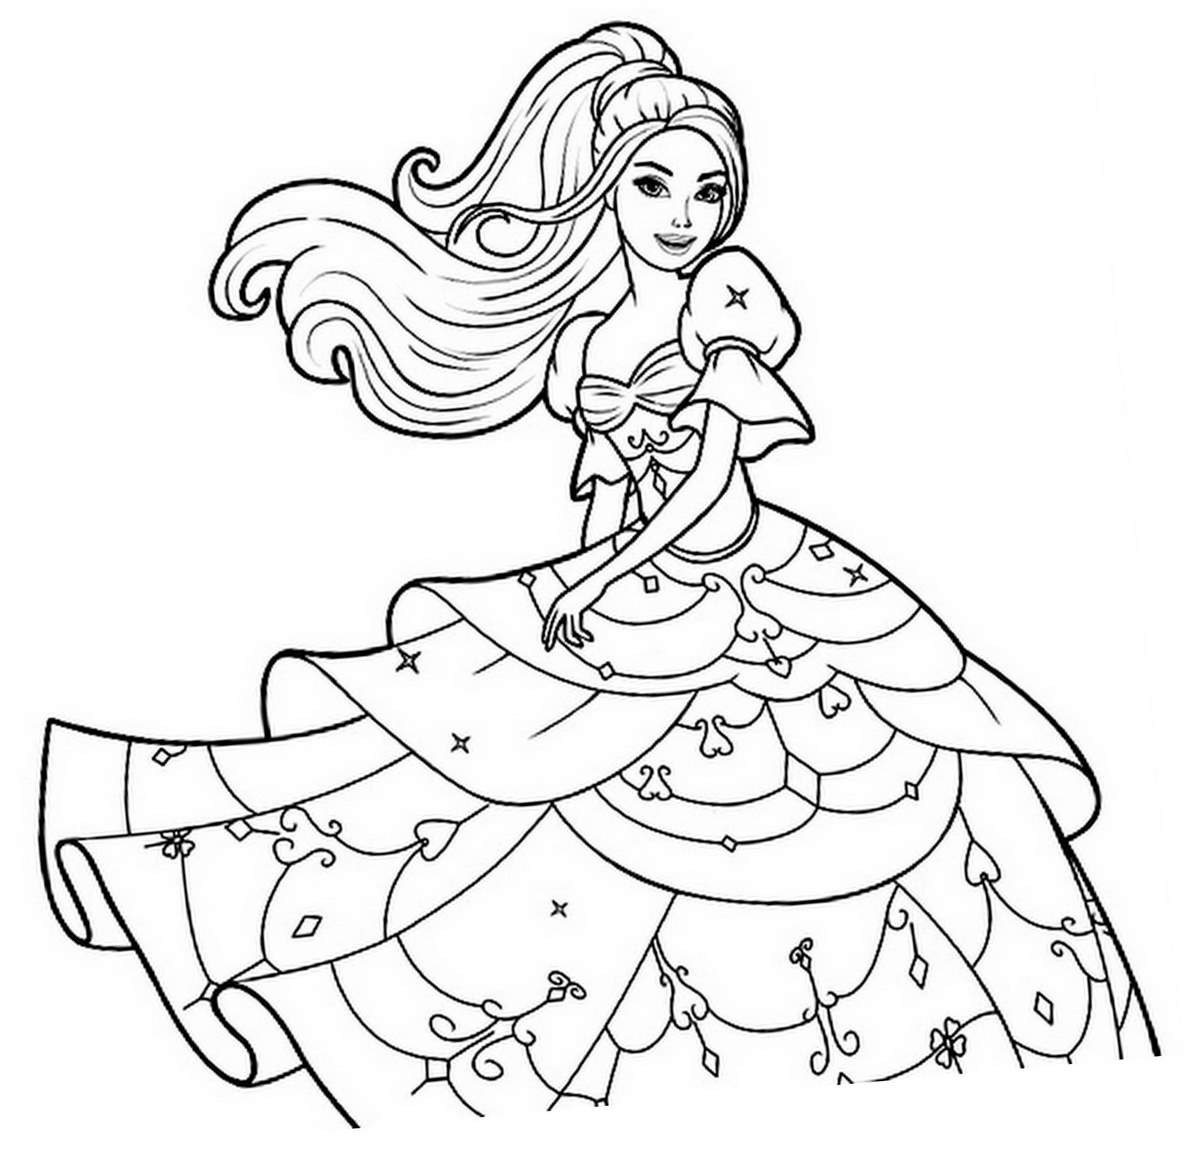 Children Coloring Page  Princesses to color for kids Princesses Kids Coloring Pages